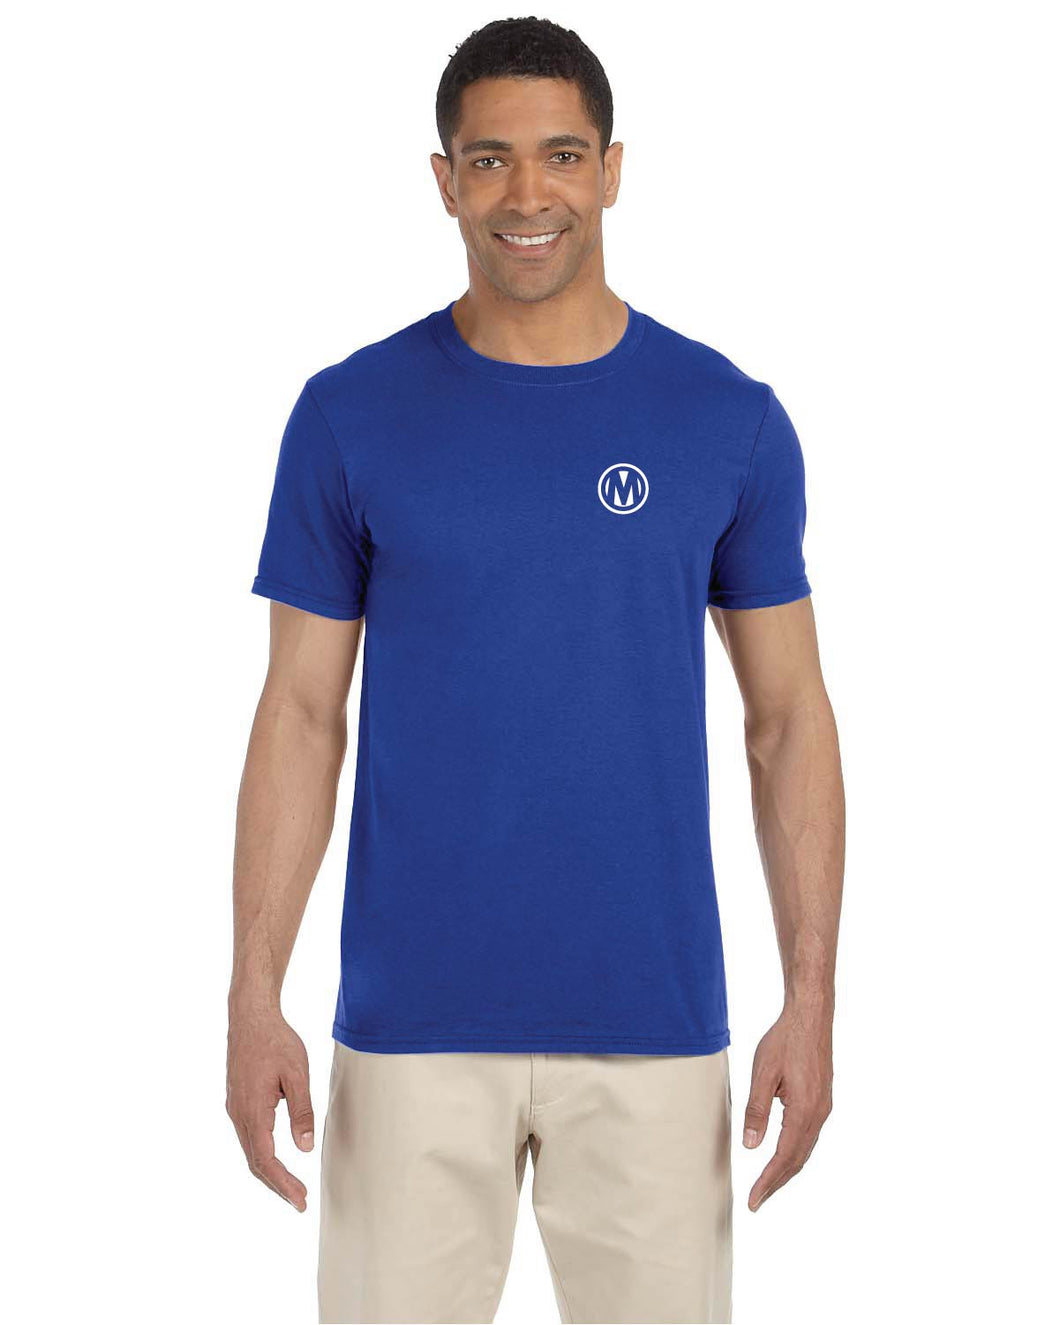 Manheim Logistics Unisex Softstyle T-Shirt